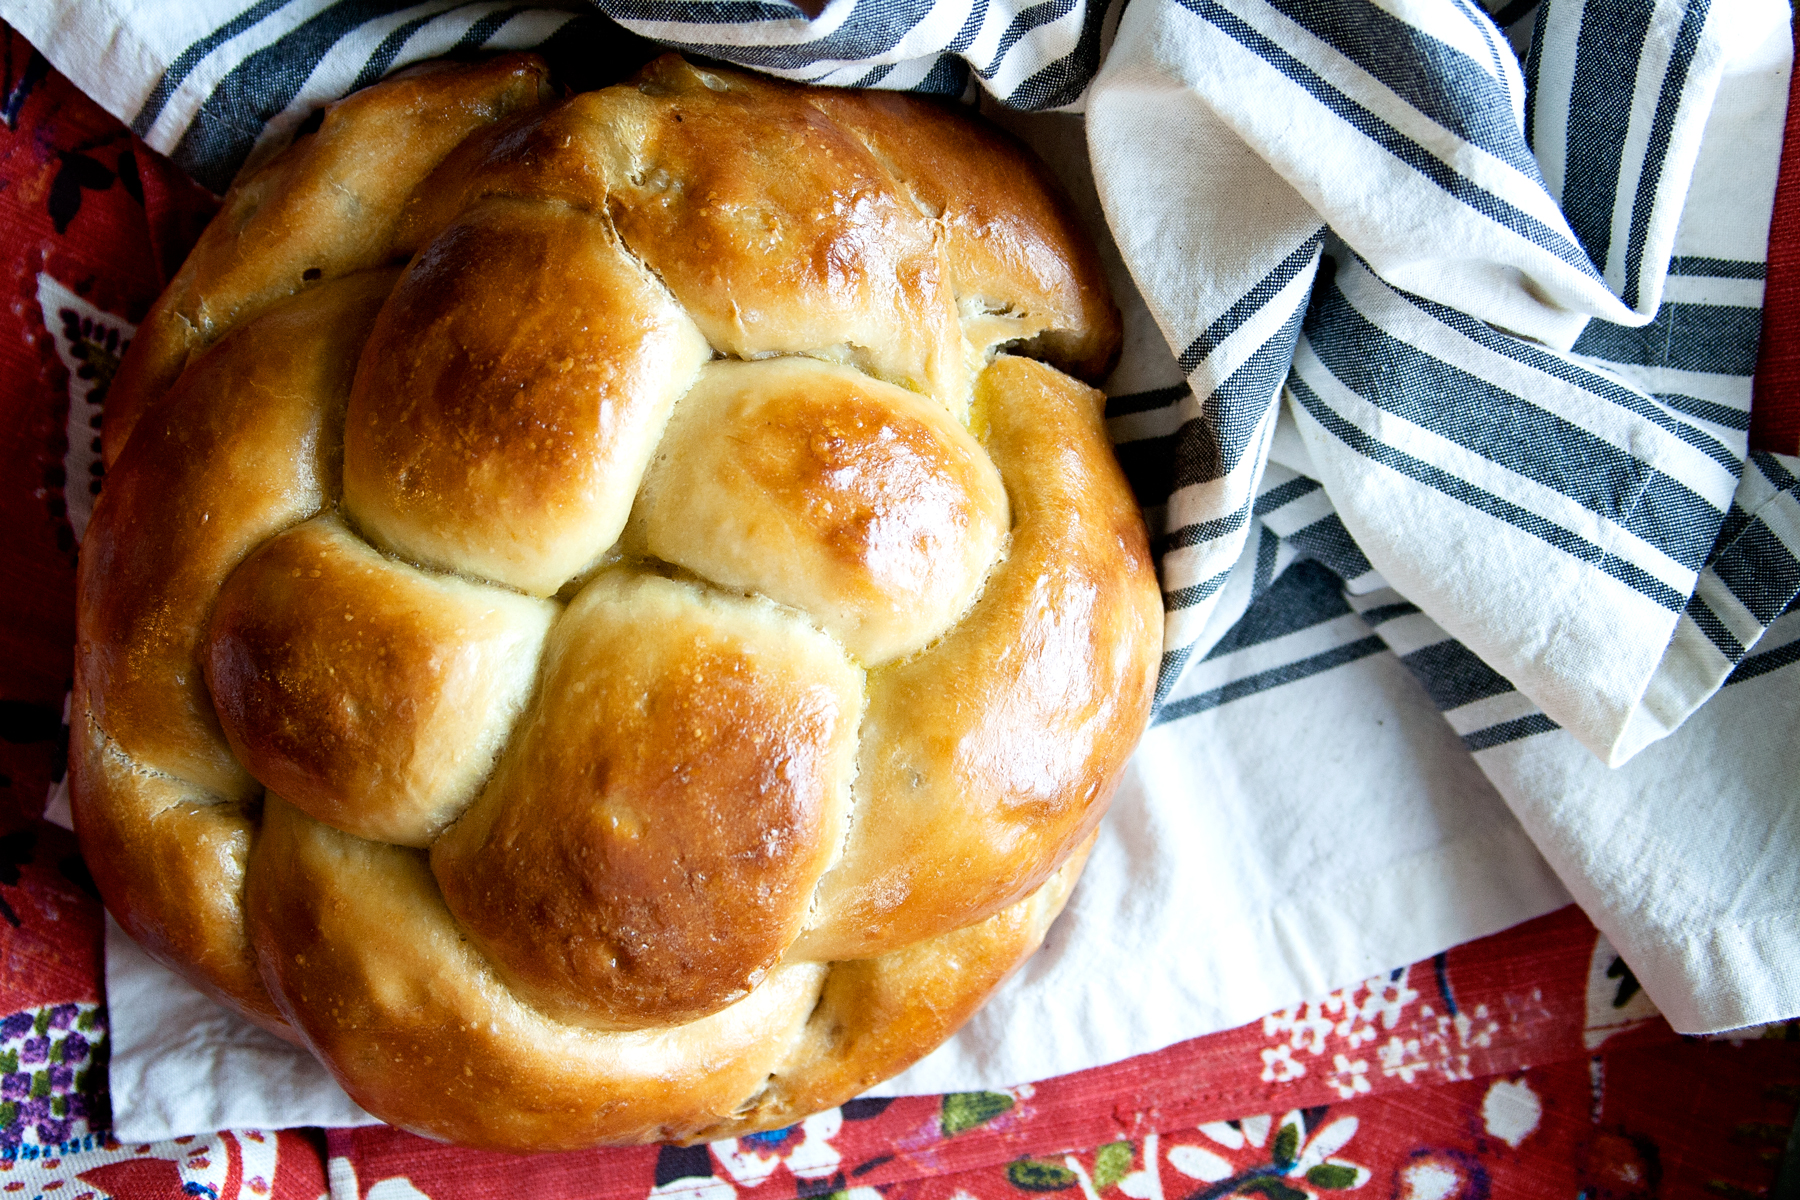 Apples & Honey Challah with Round Braided Challah Tutorial